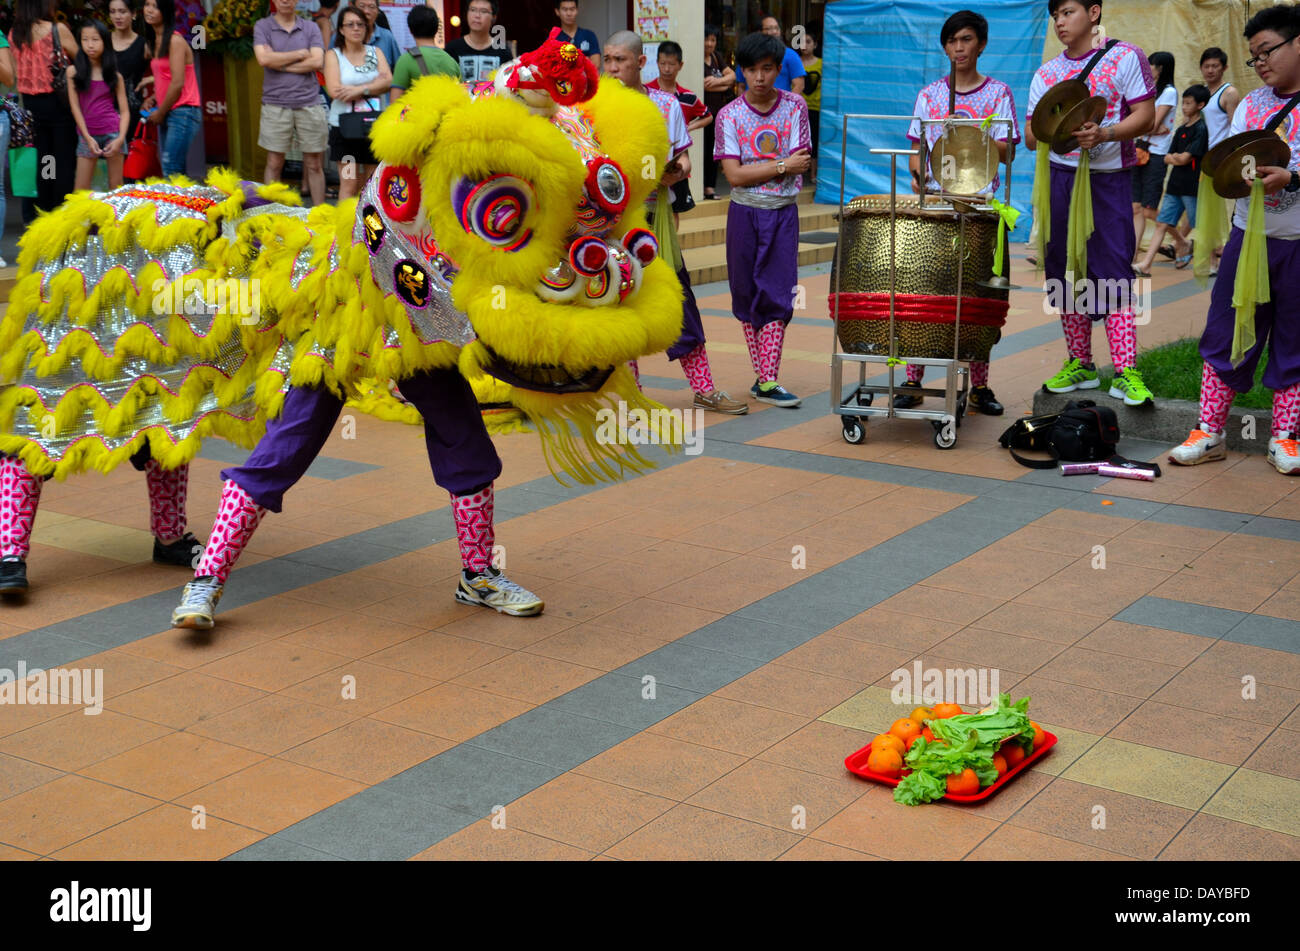 Dance troupe performs Chinese lion dance, Singapore Stock Photo